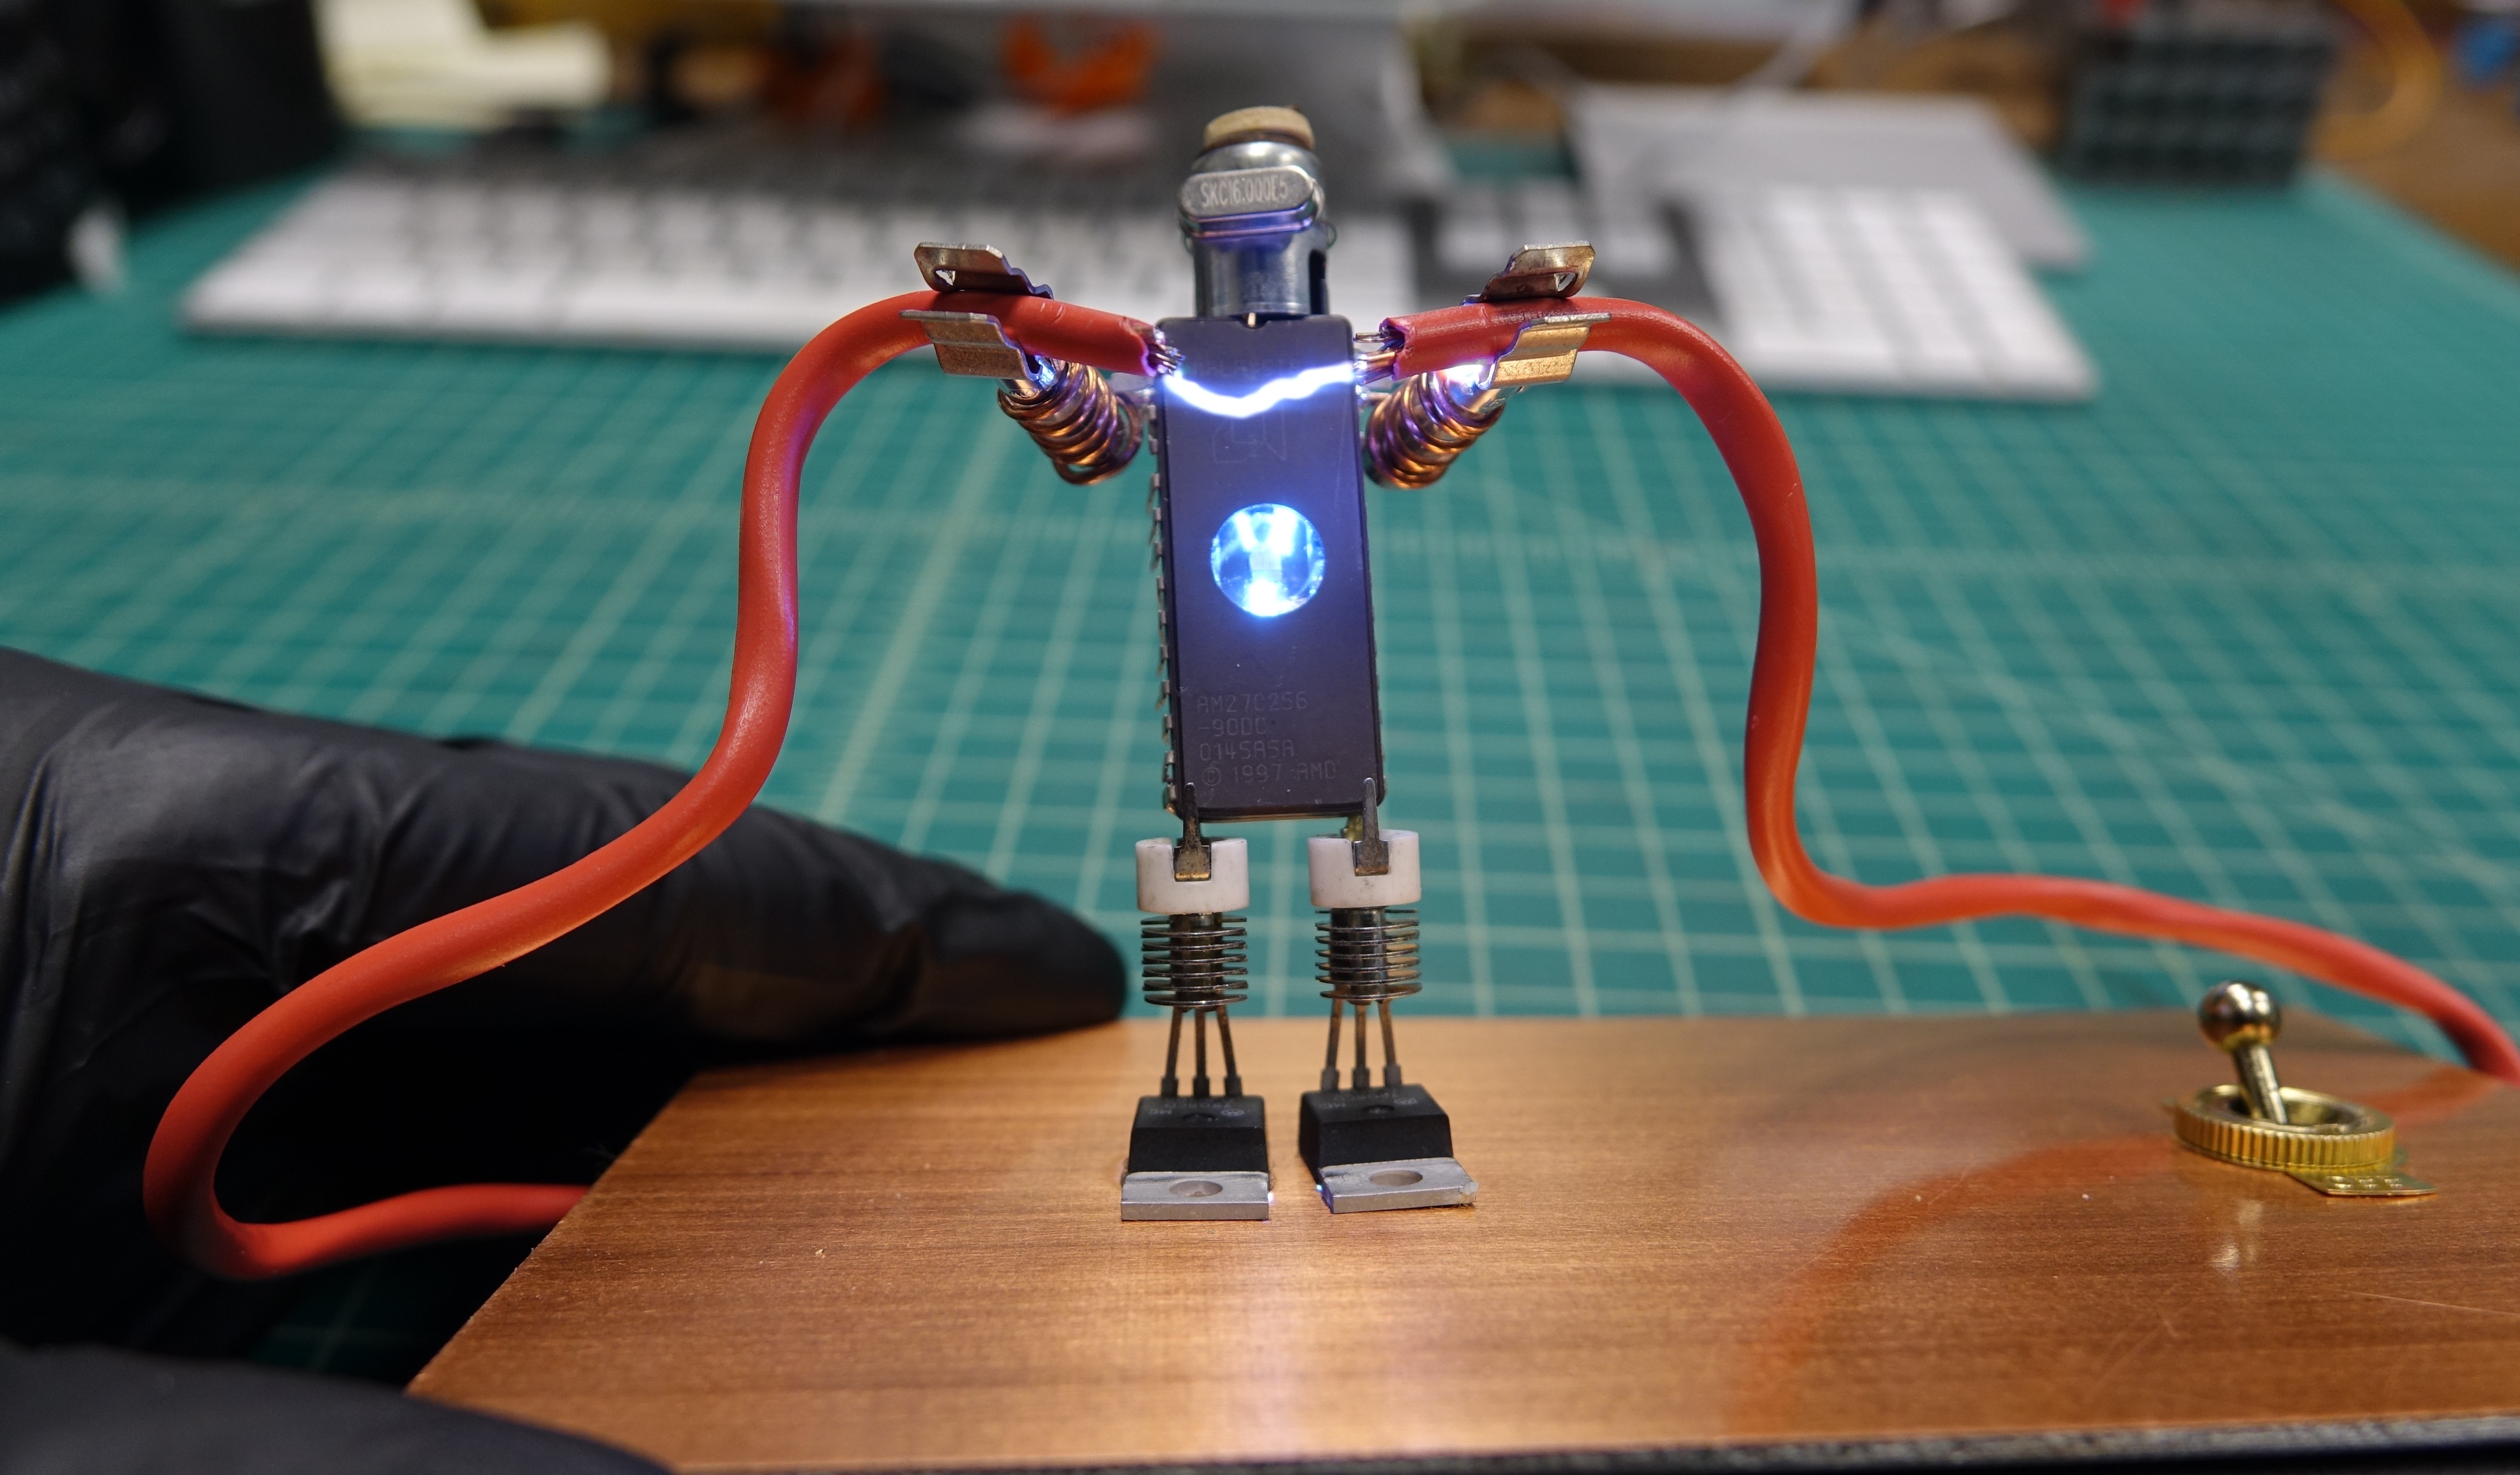 This High Voltage Robot Sculpture Is as Scary as It Is Cute